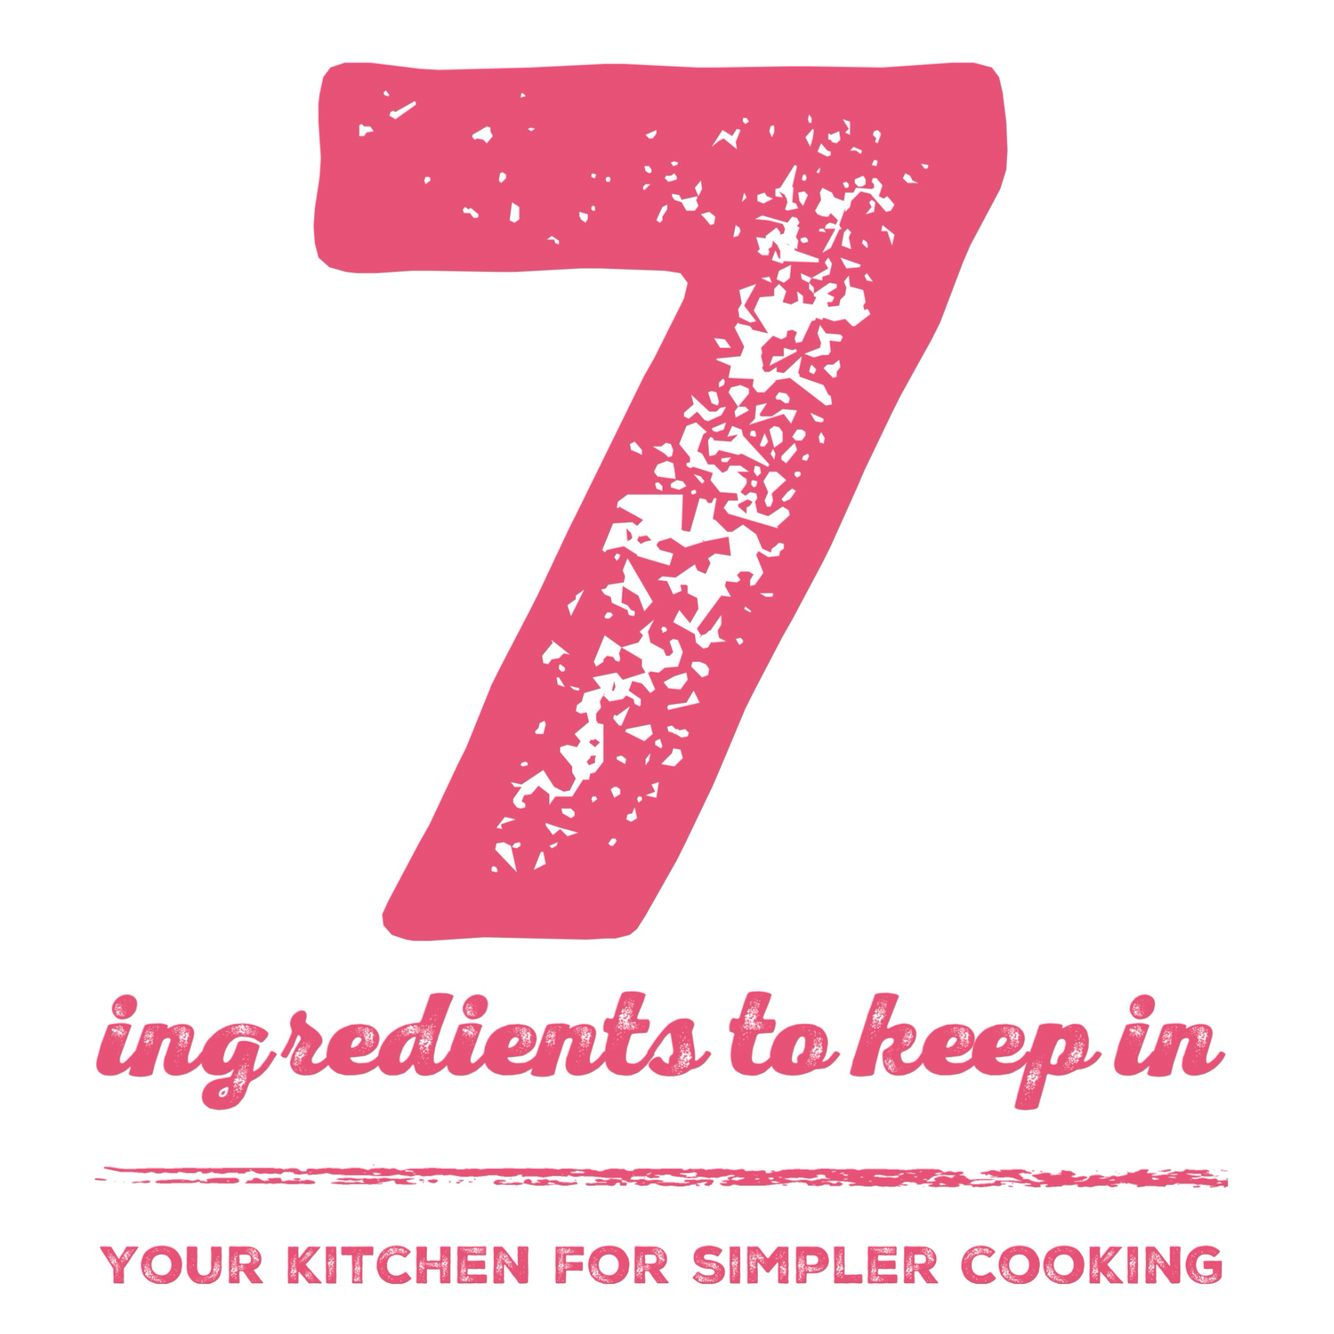 7 easy tips to help simplify your cooking!